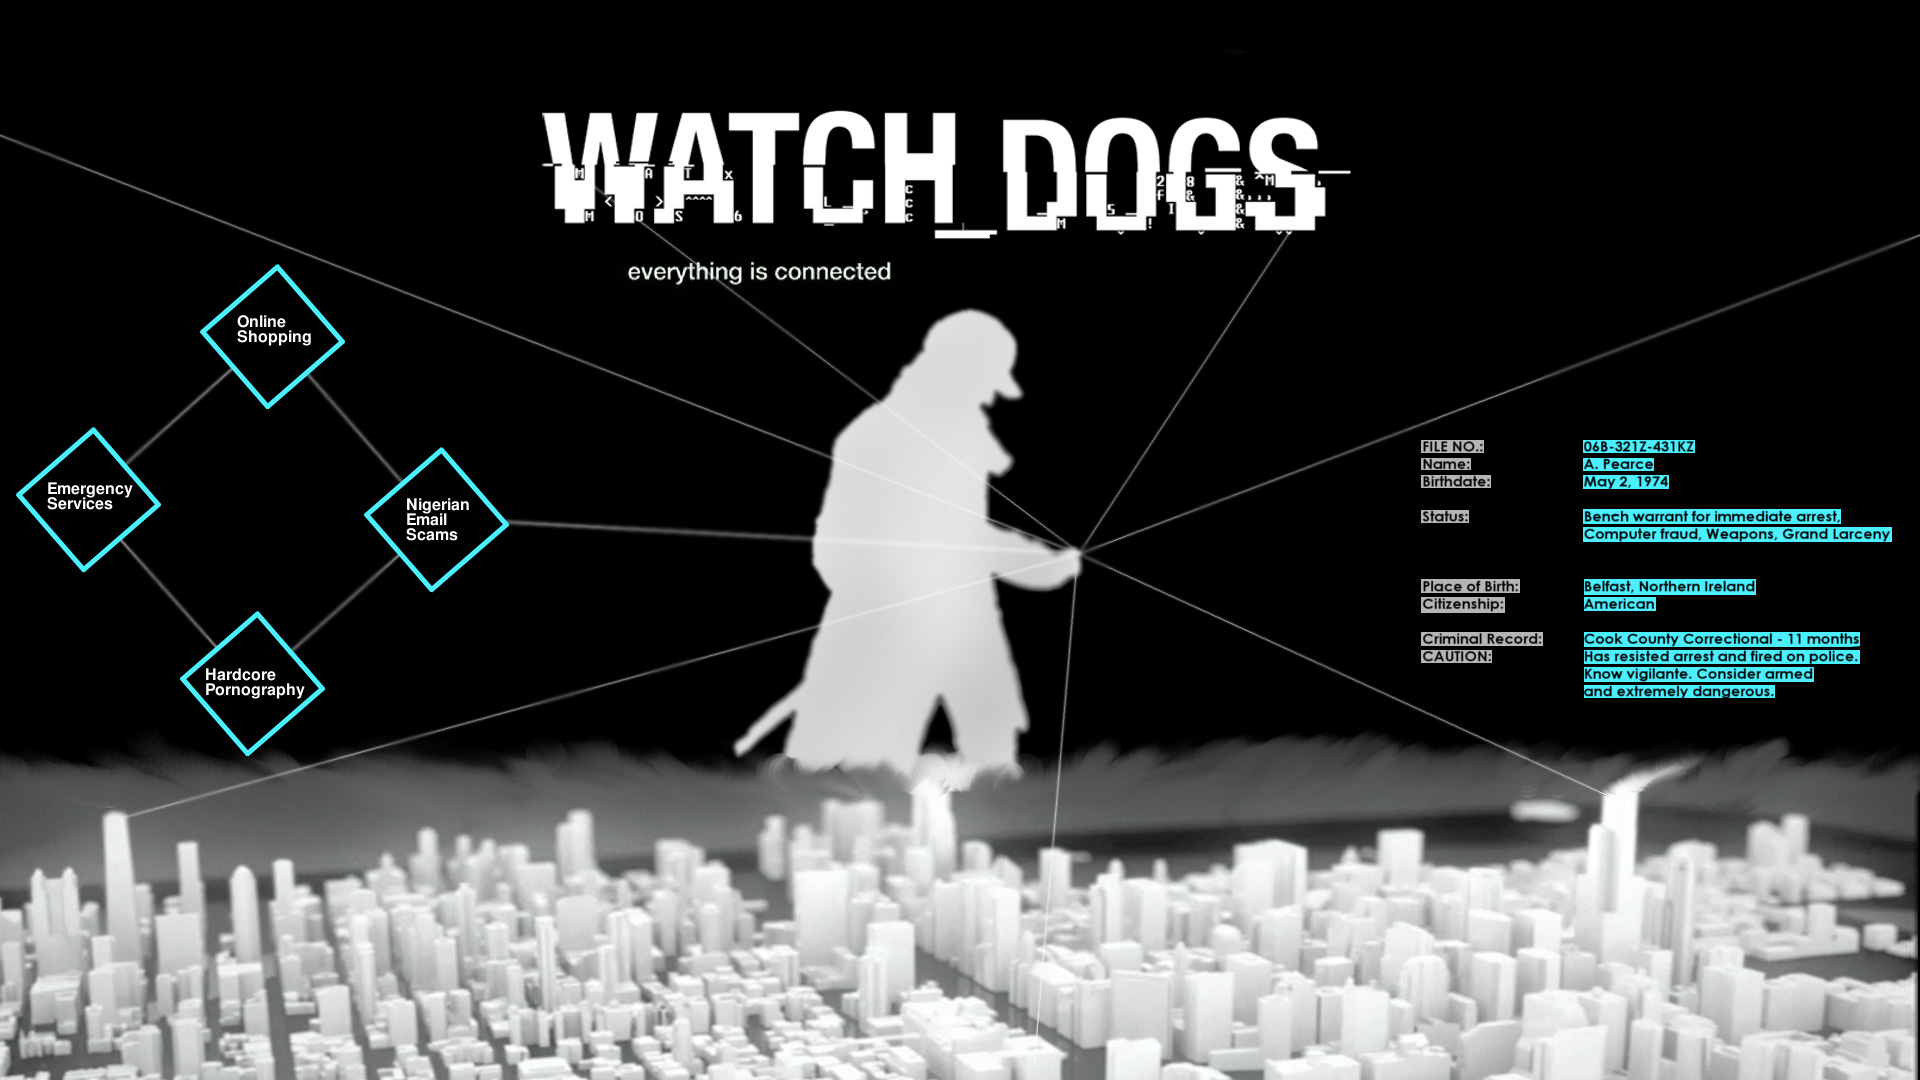 Watch dogs wallpaper image